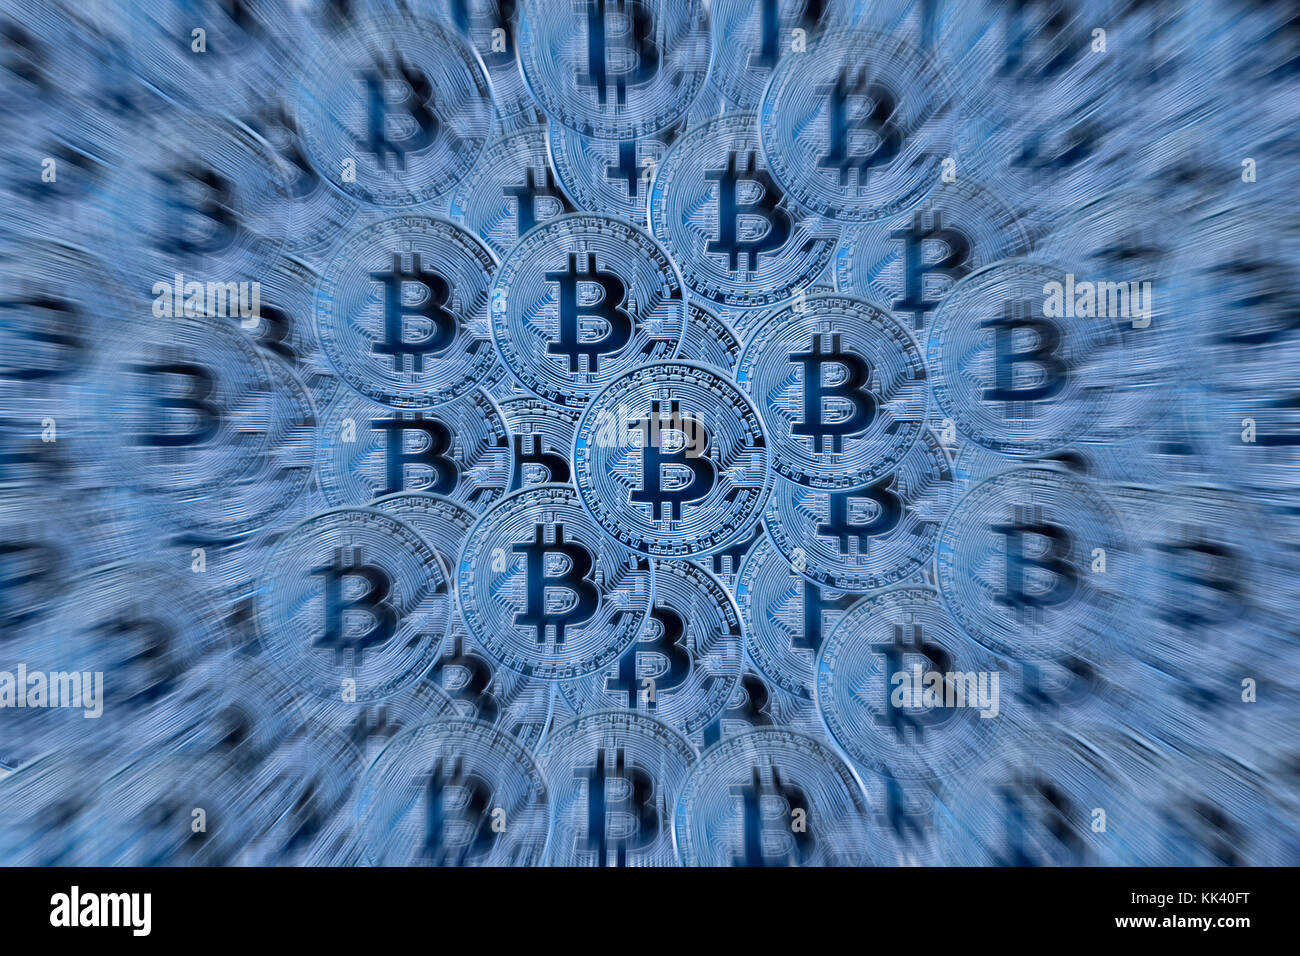 Bitcoin background - Stock Image